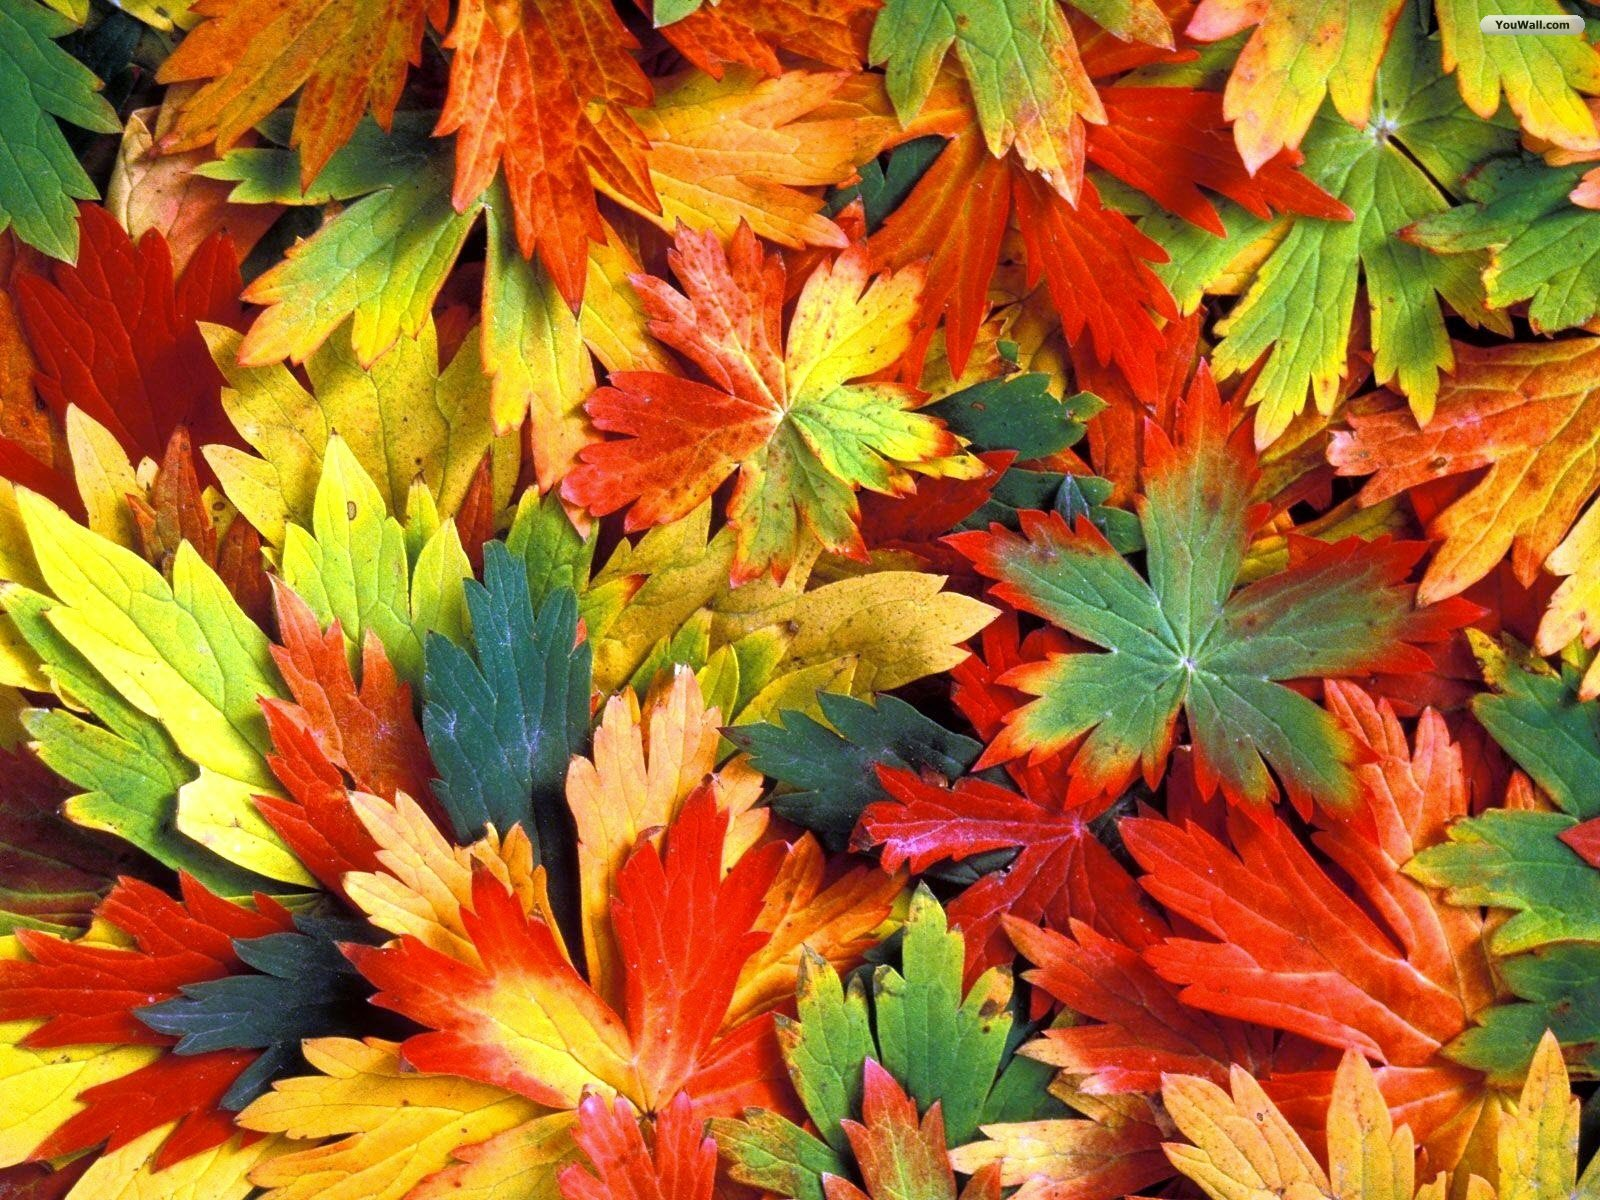 Colorful Autumn Leaves Photo